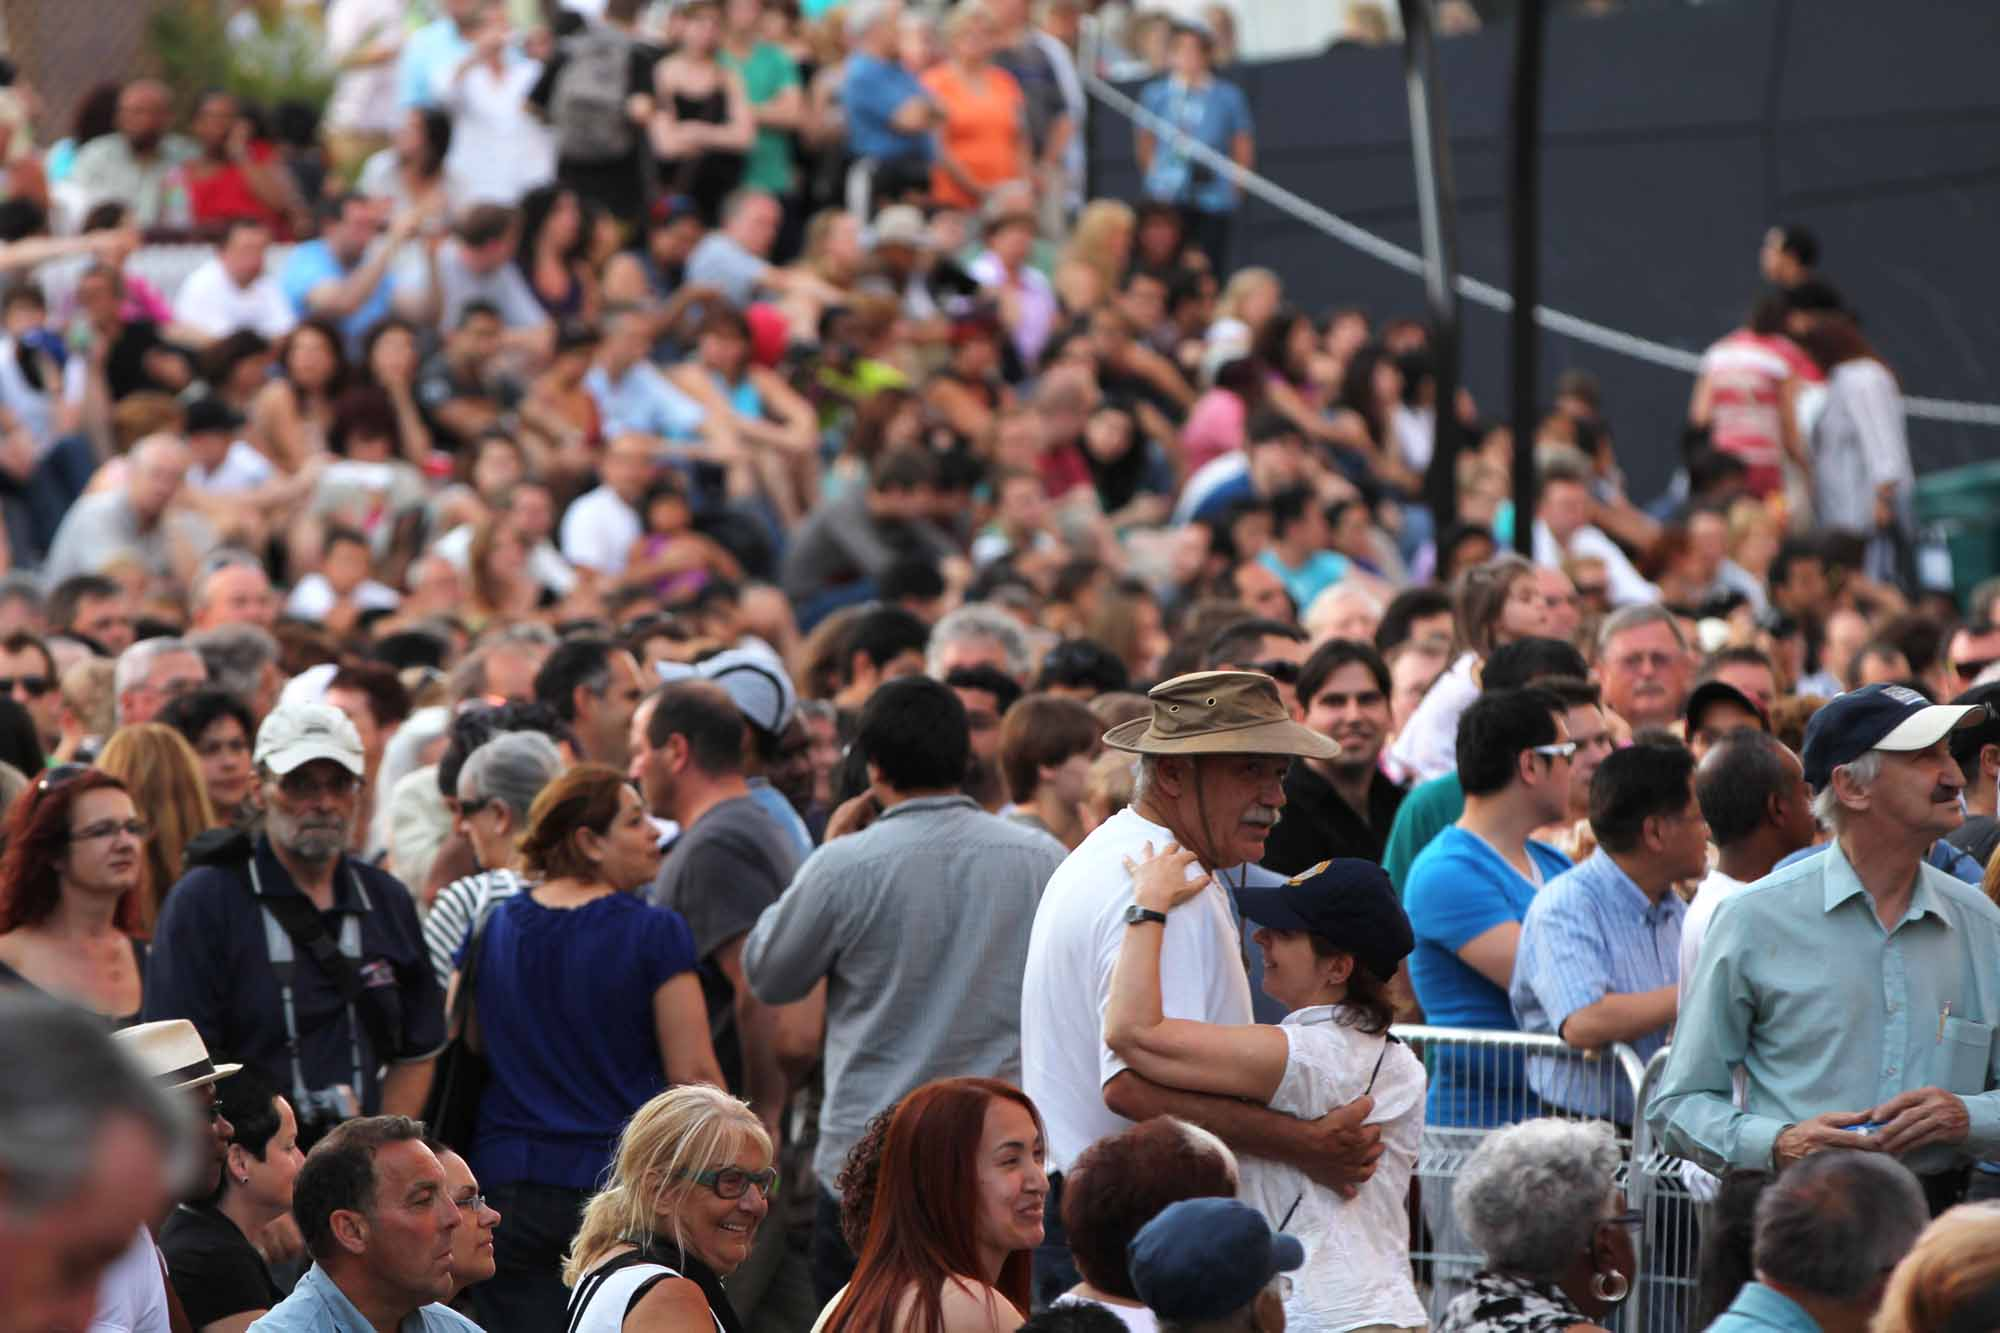 Jazz festival Crowd in Montreal